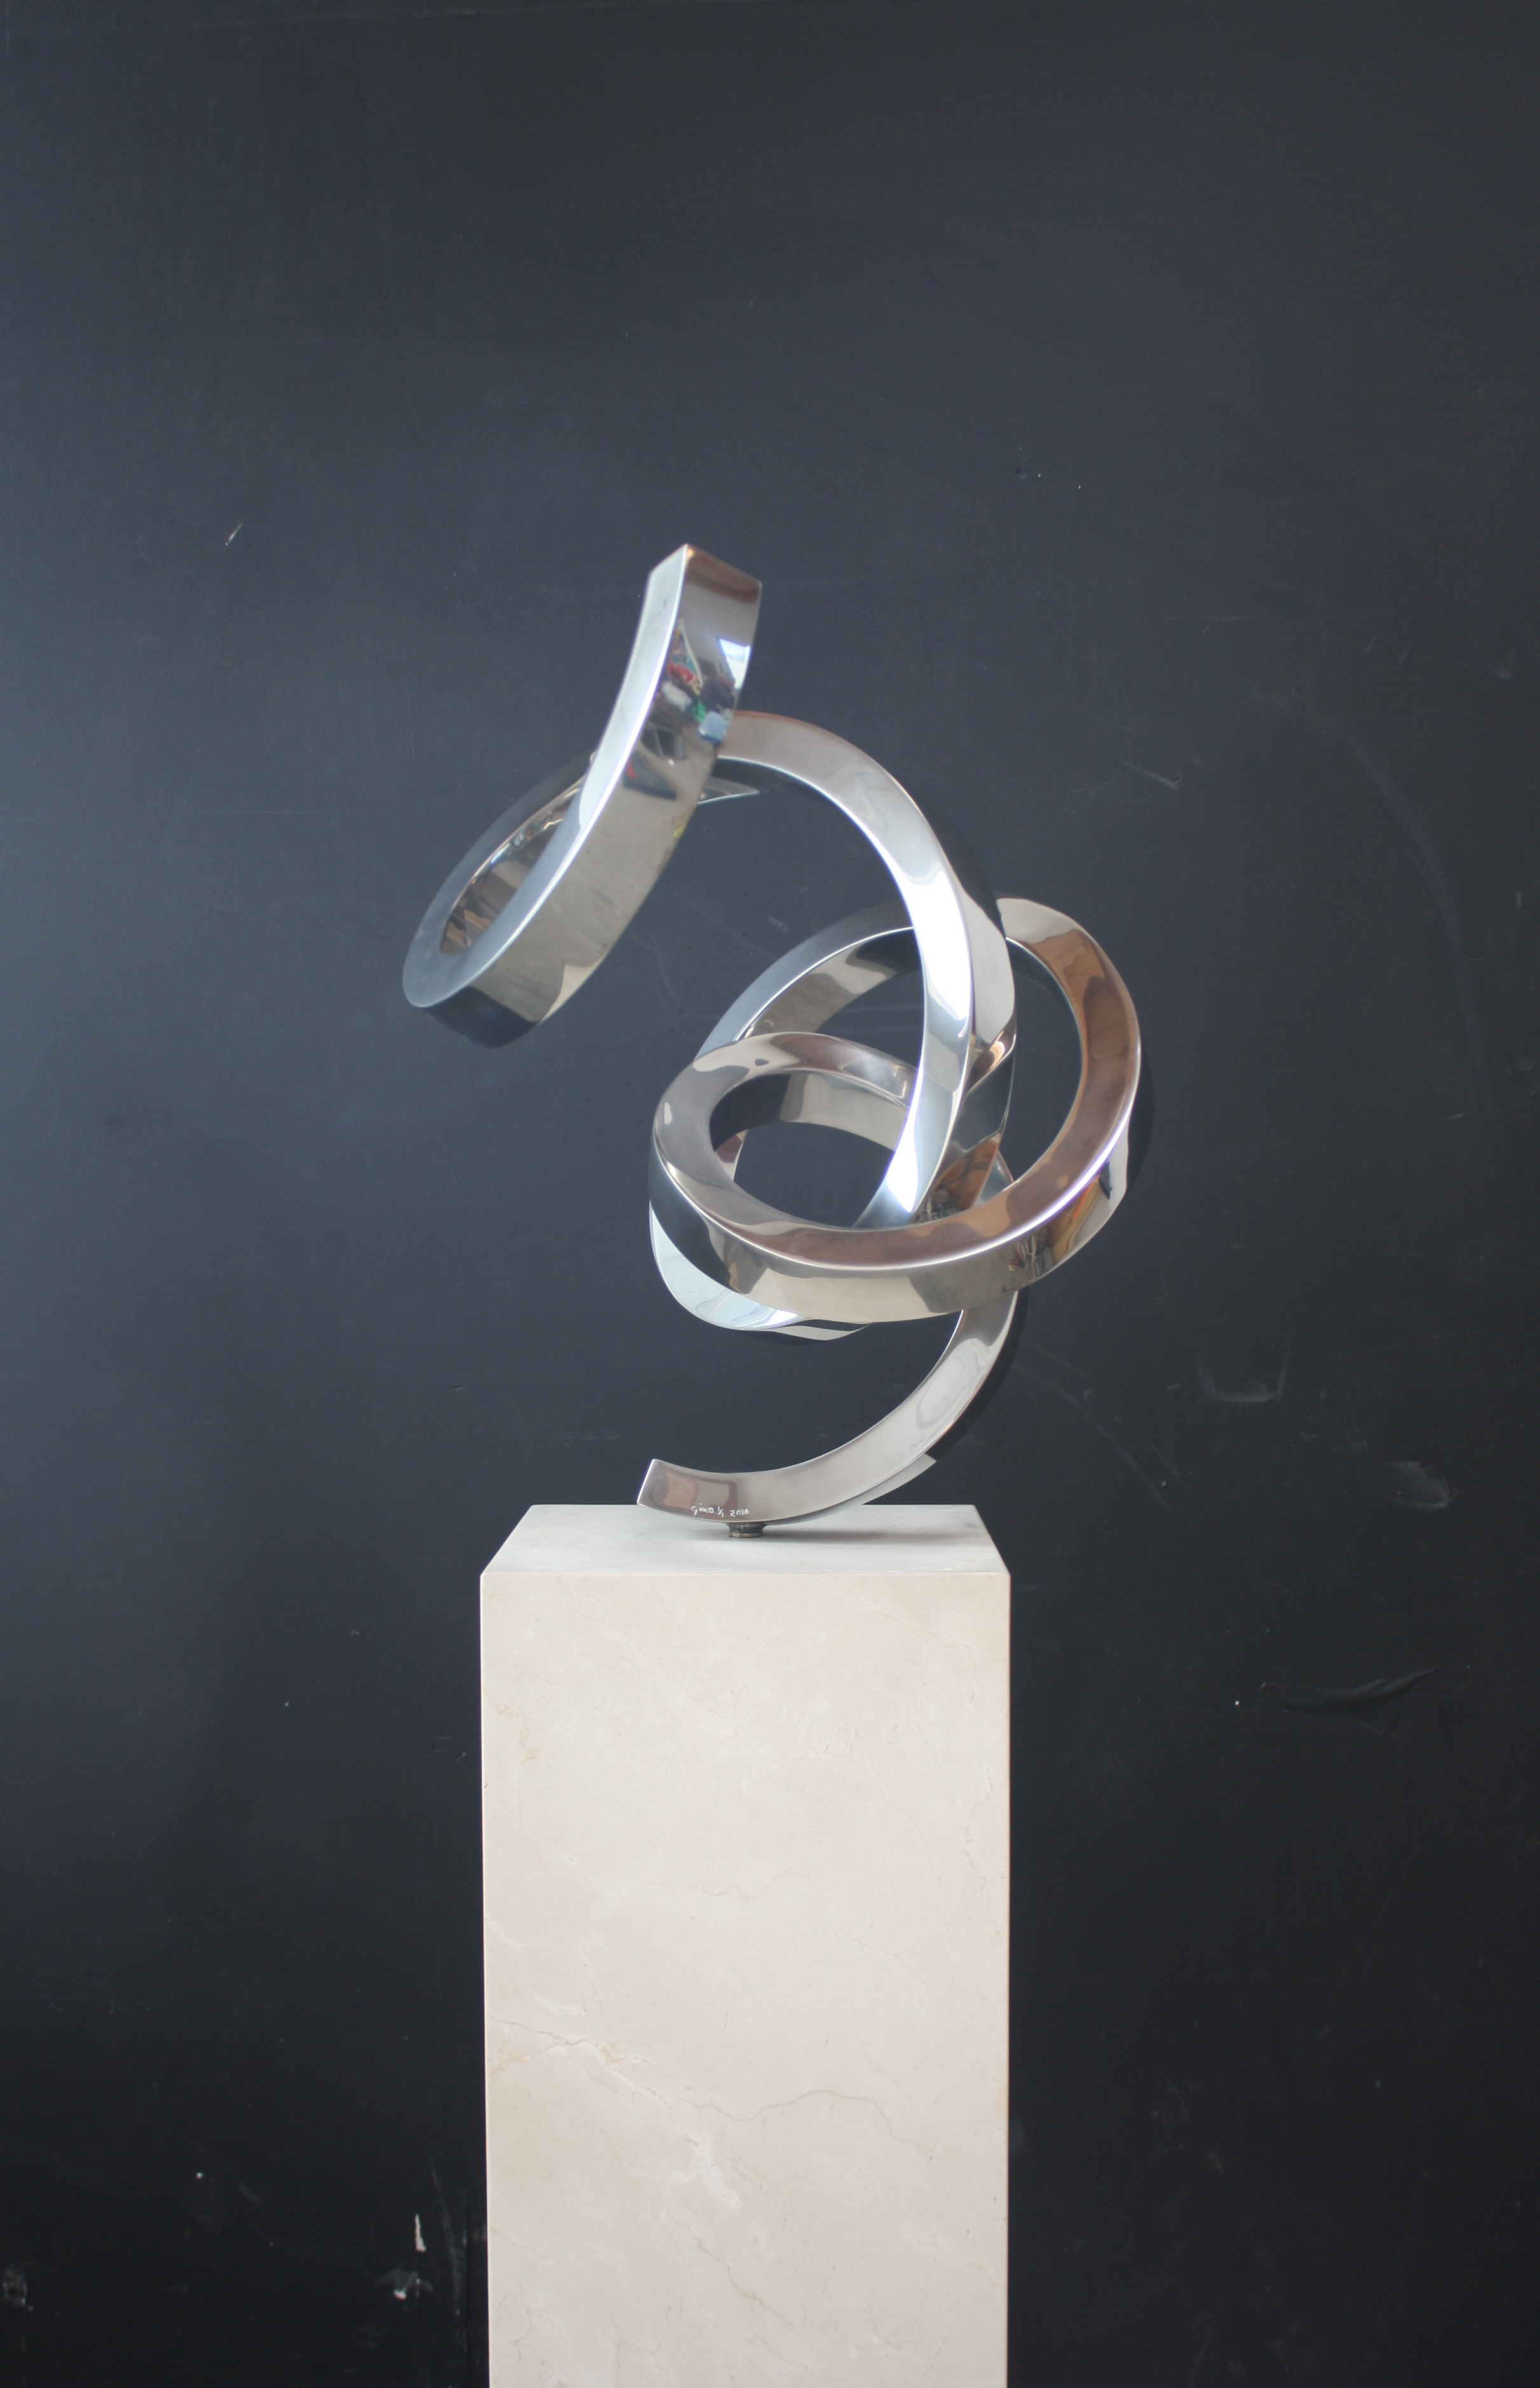 marine grade stainless steel sculpture gino miles titled Celebration